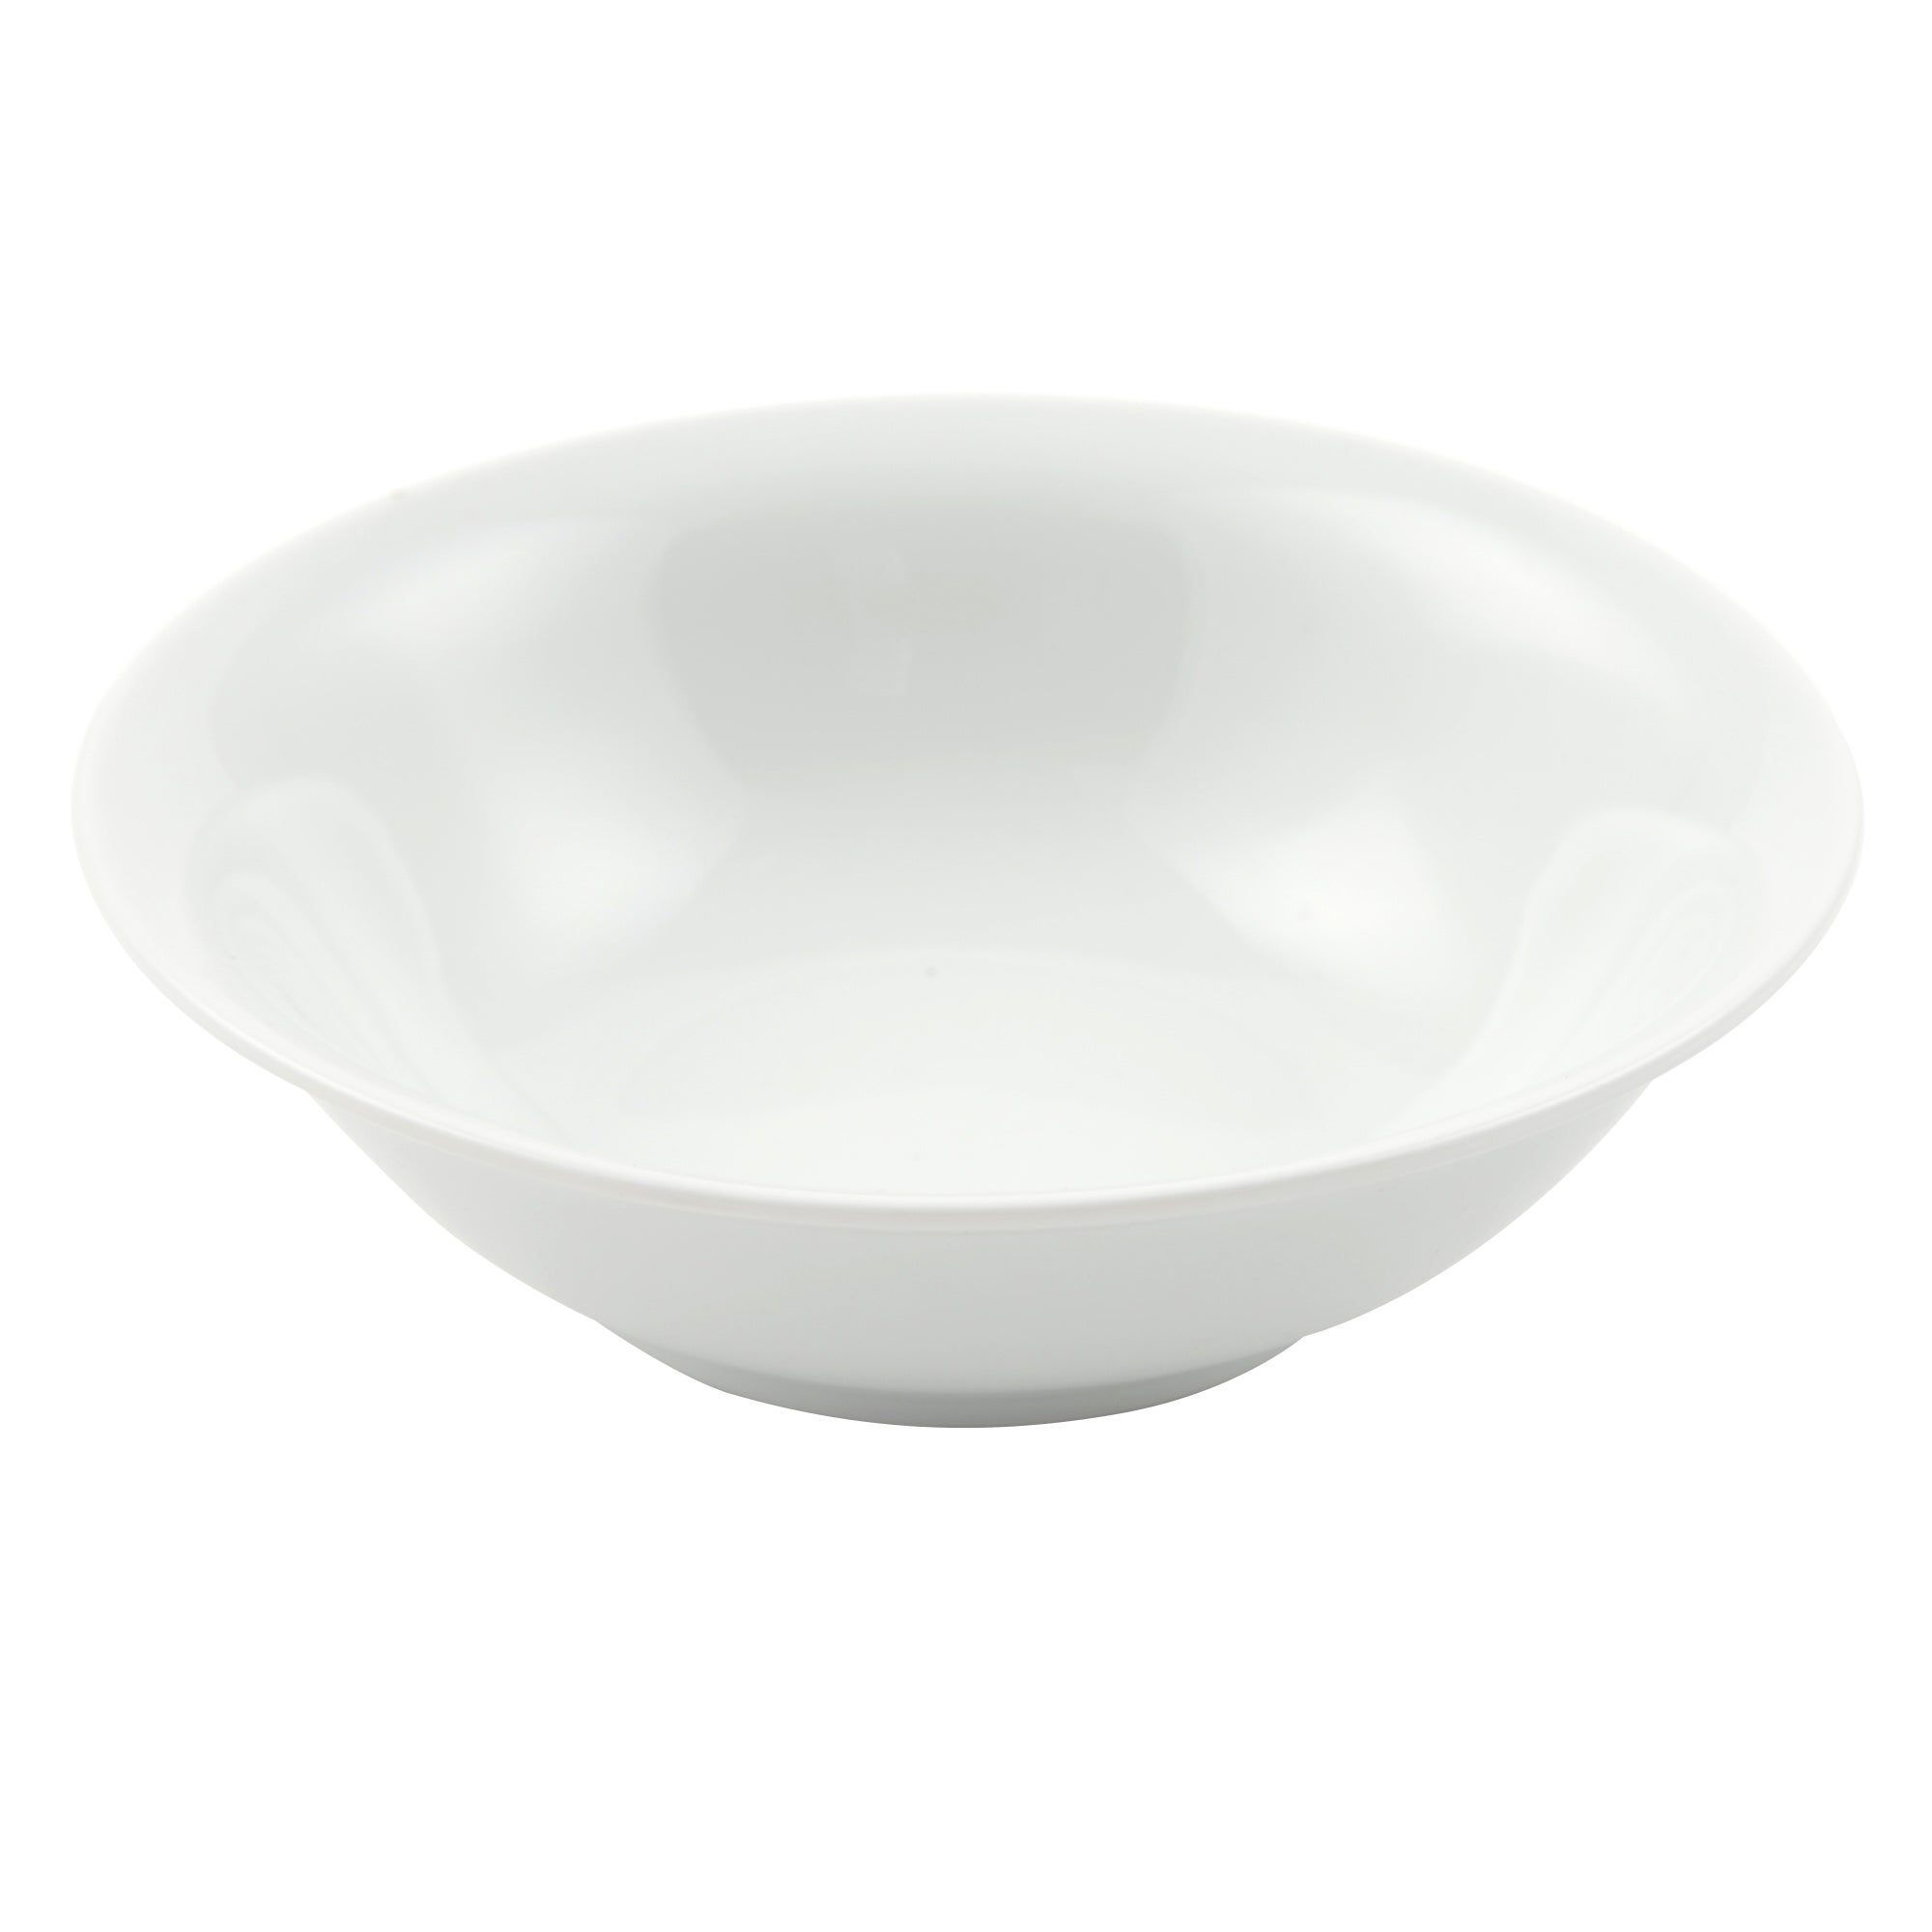 Purity Collection Cereal Bowl